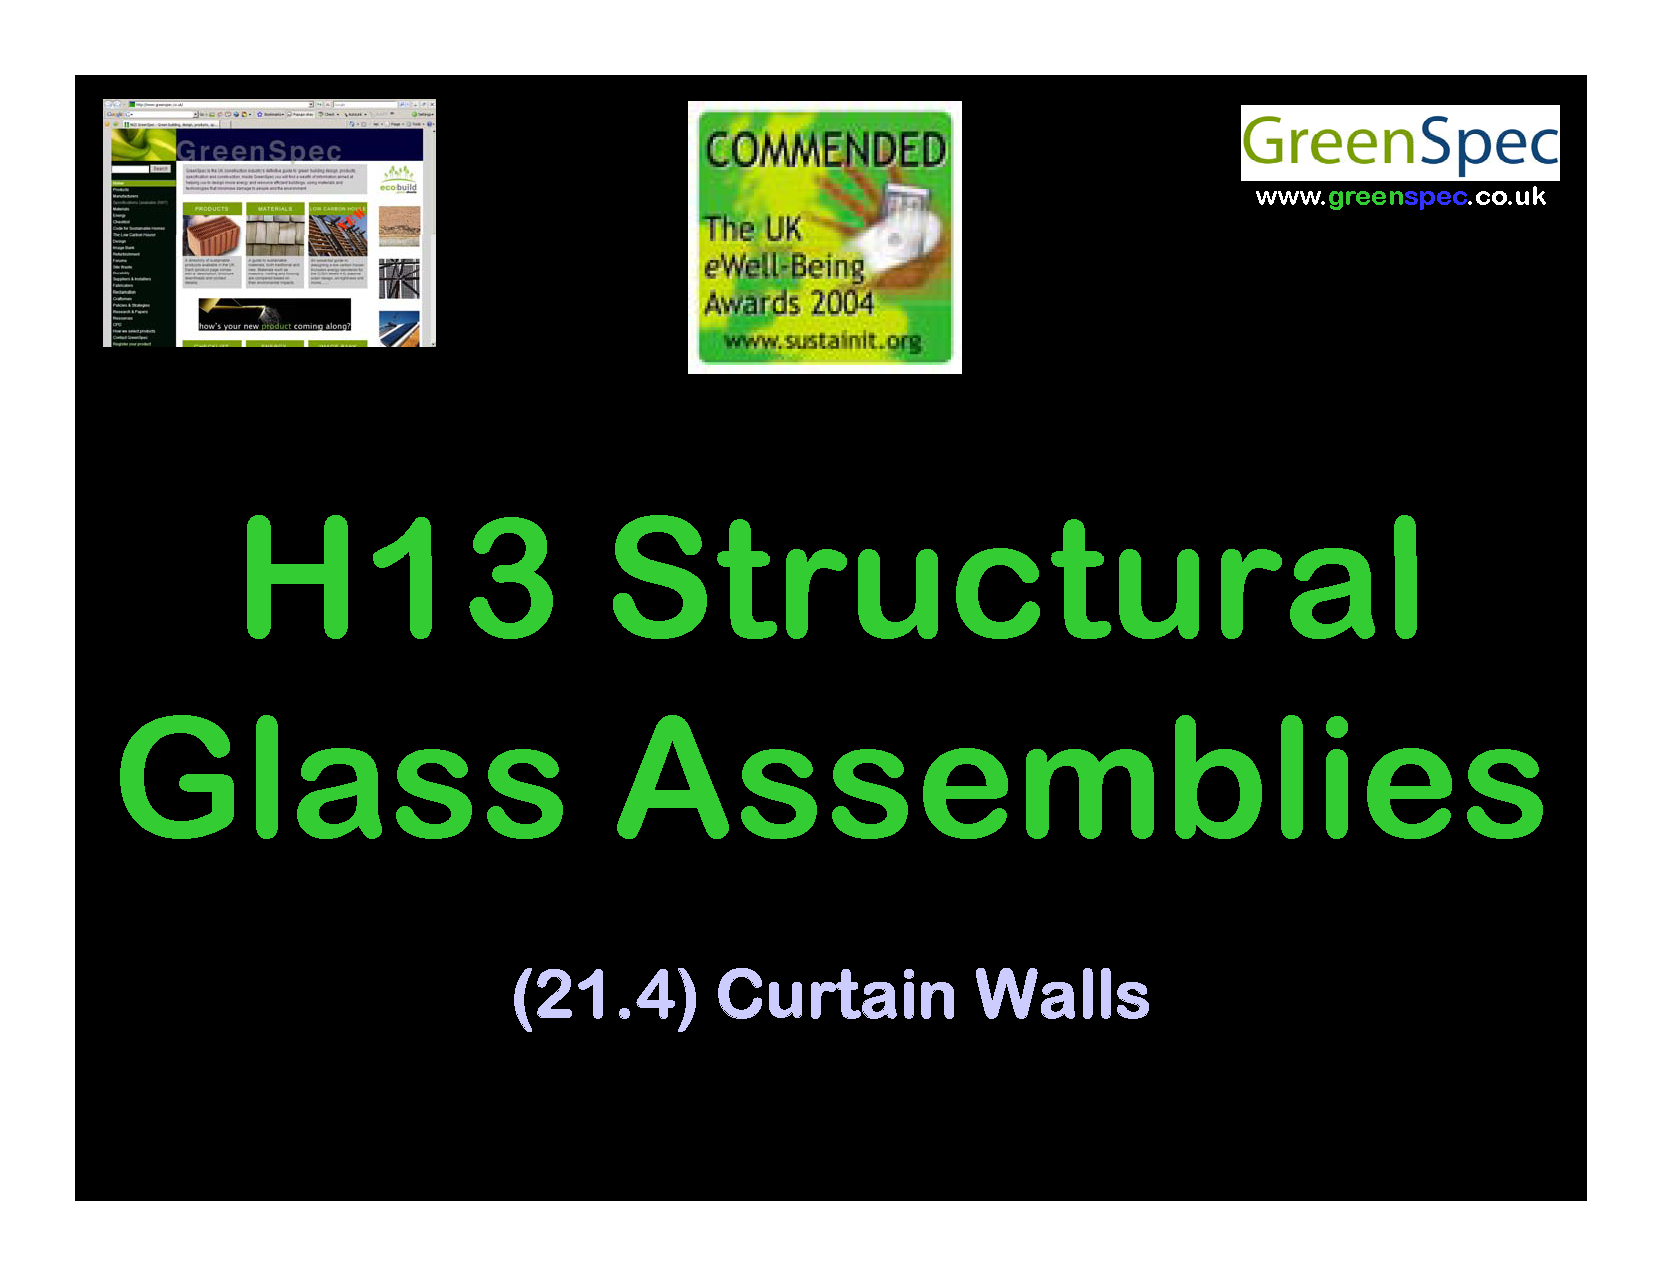 JH13StructuralGlassAssemblies_Page_1.png